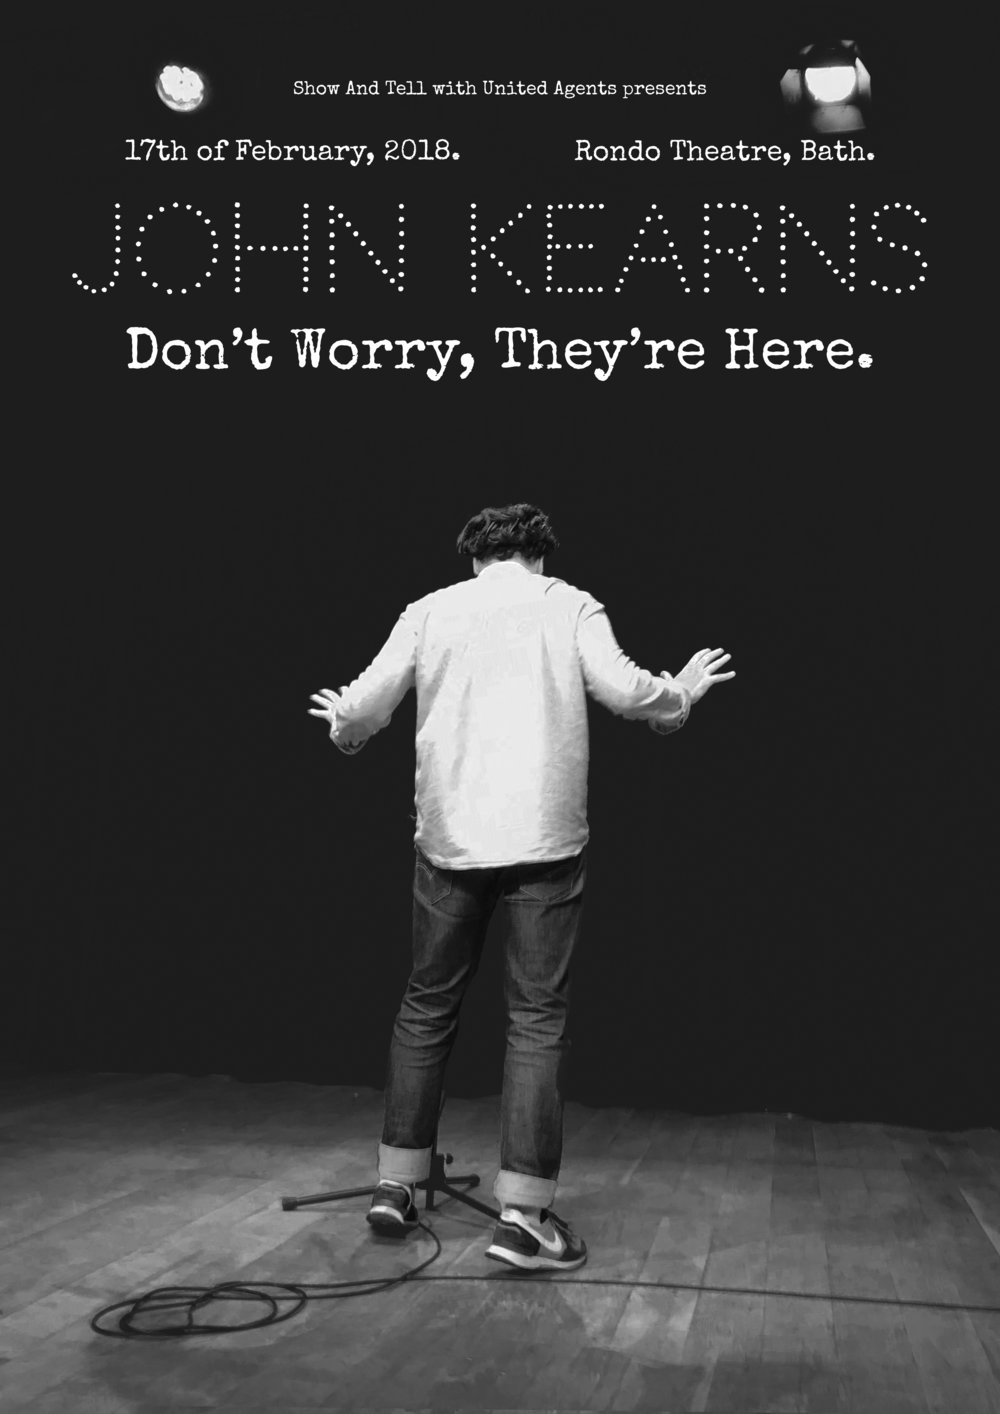 The final version of the John Kearns poster.